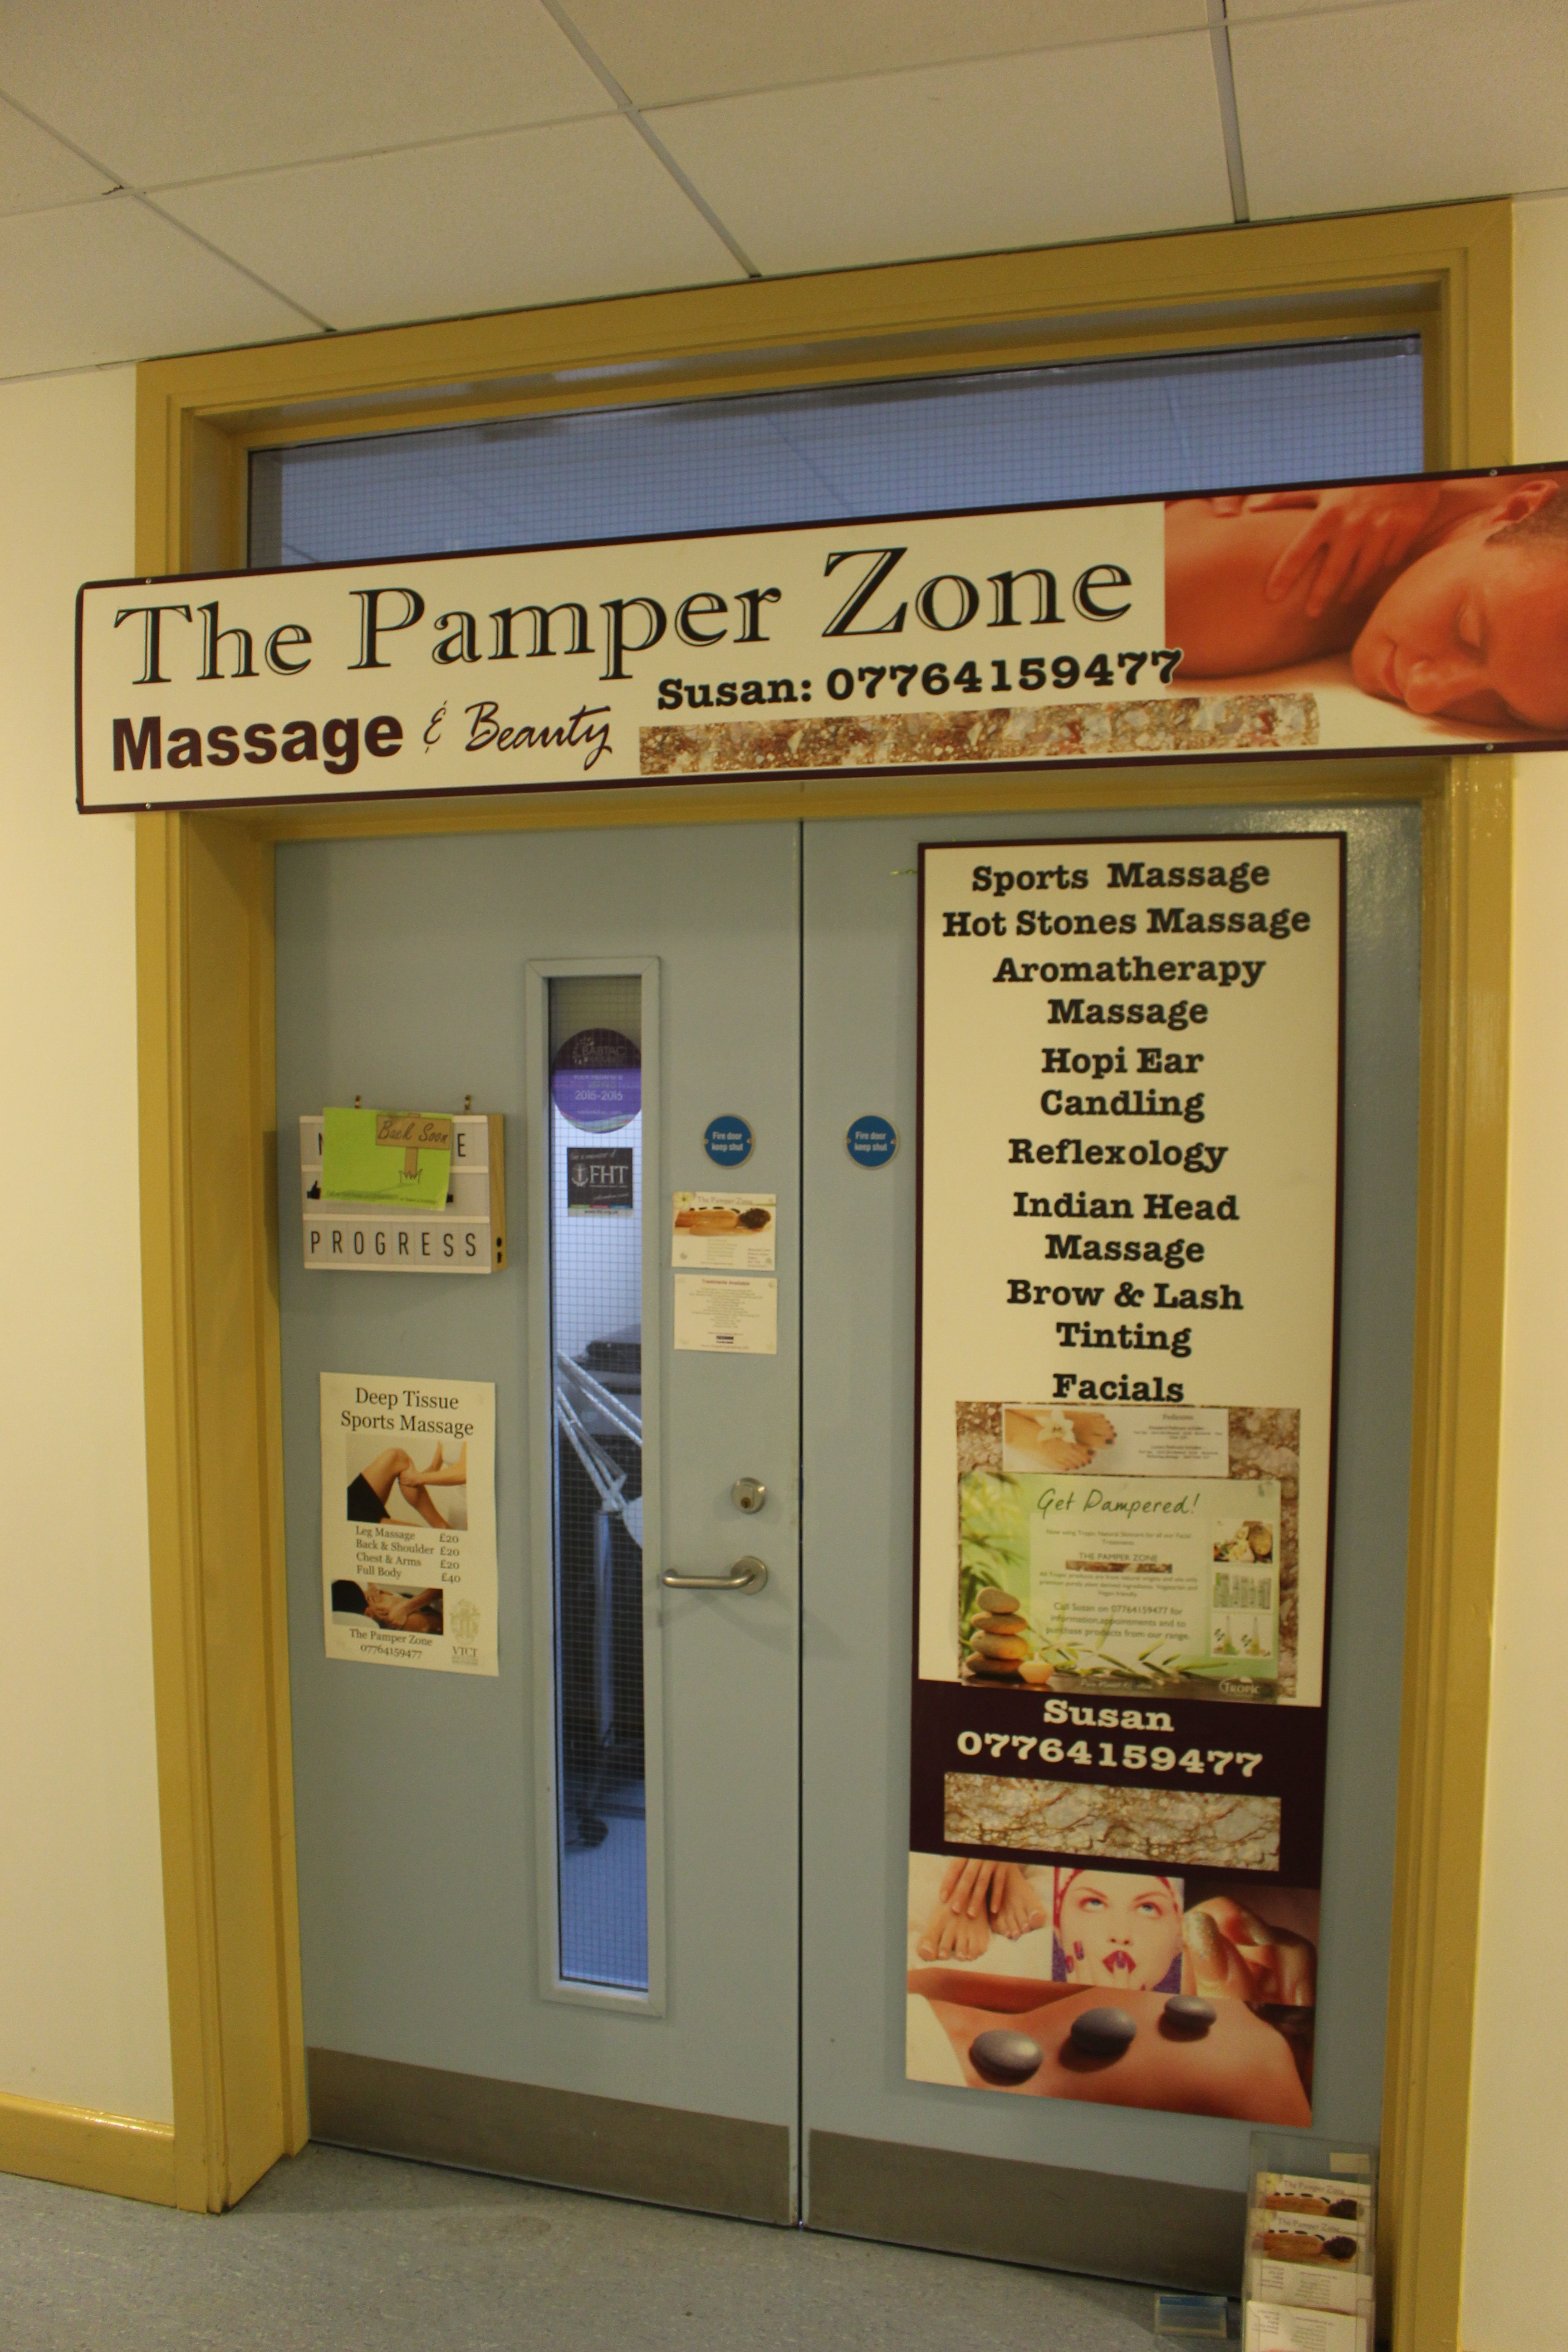 THE PAMPER ZONE